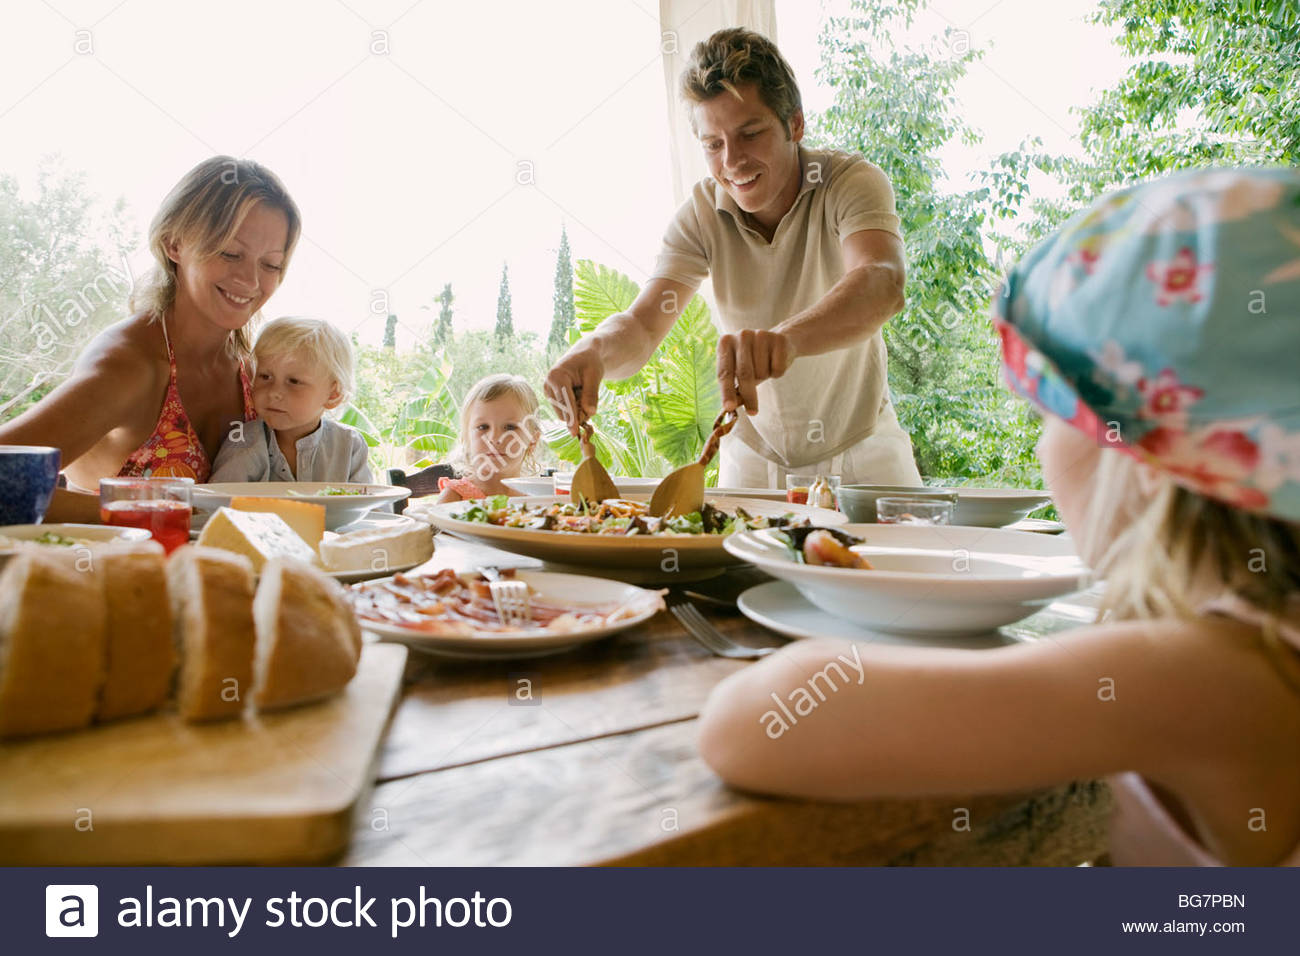 Souper de famille Photo Stock